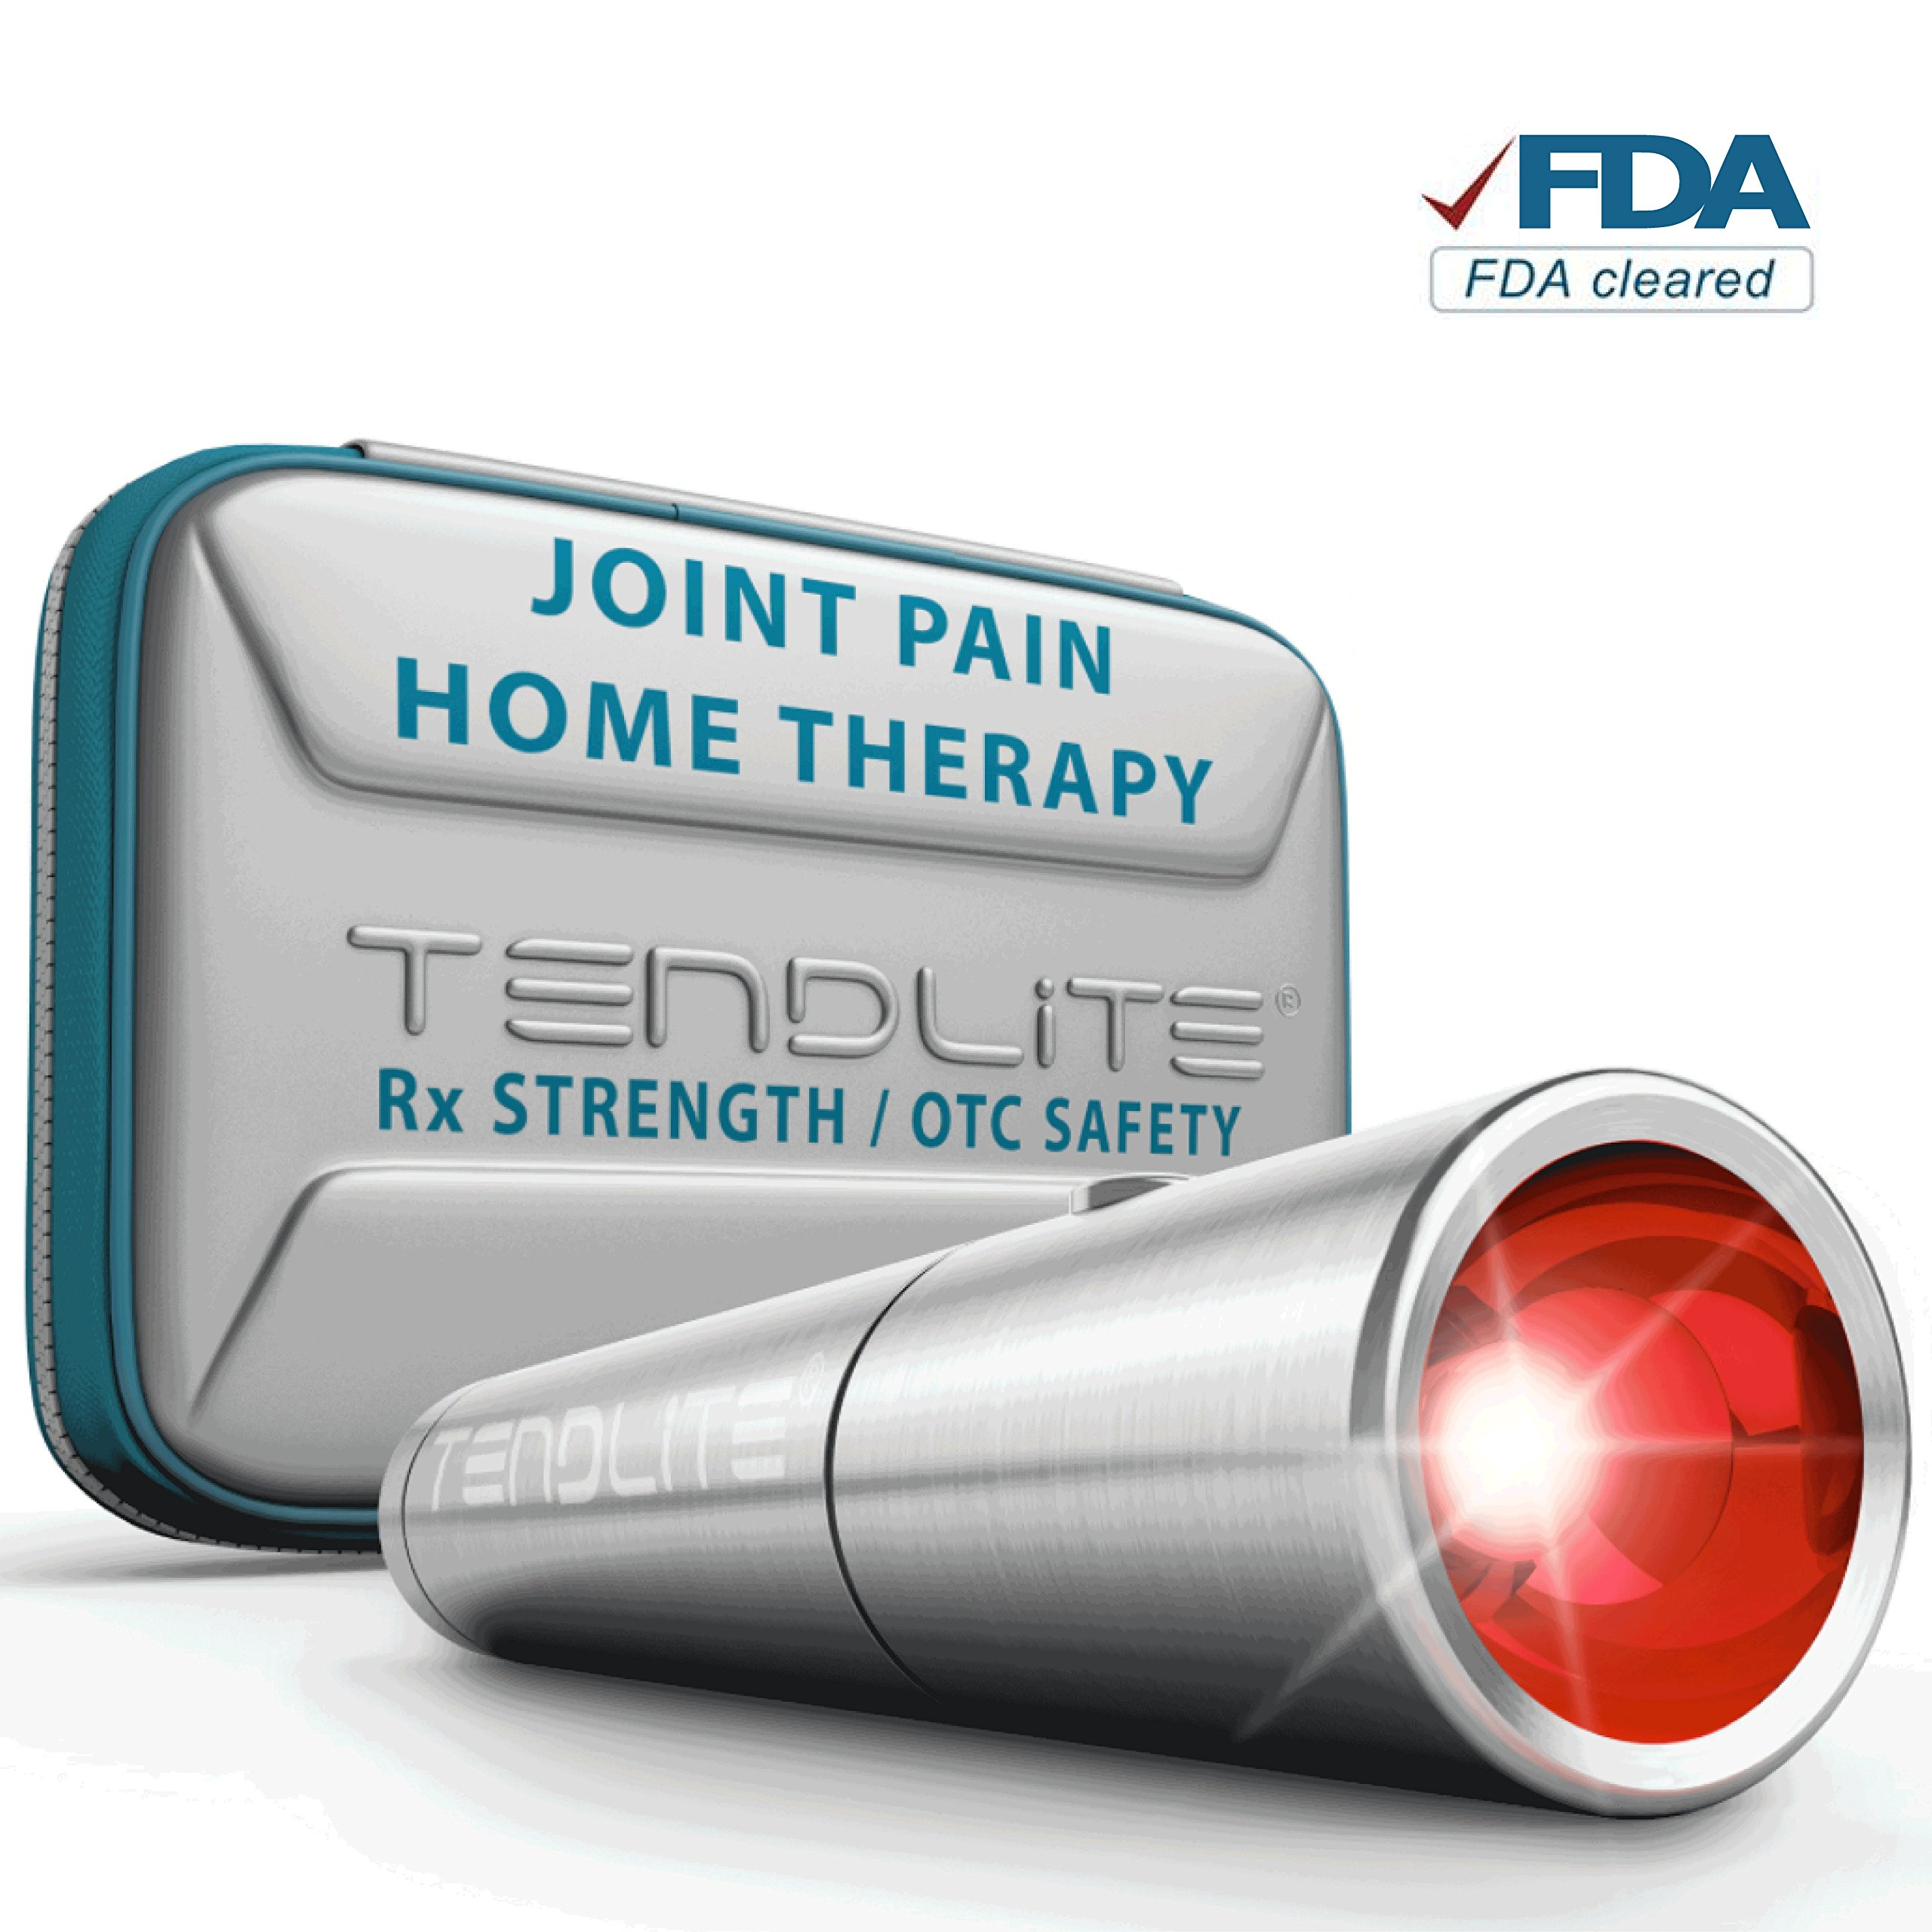 Pain Relief Therapy TENDLITE® FDA Cleared Red LED Light Device Joint & Muscle Reliever MEDICAL GRADE by TENDLITE®